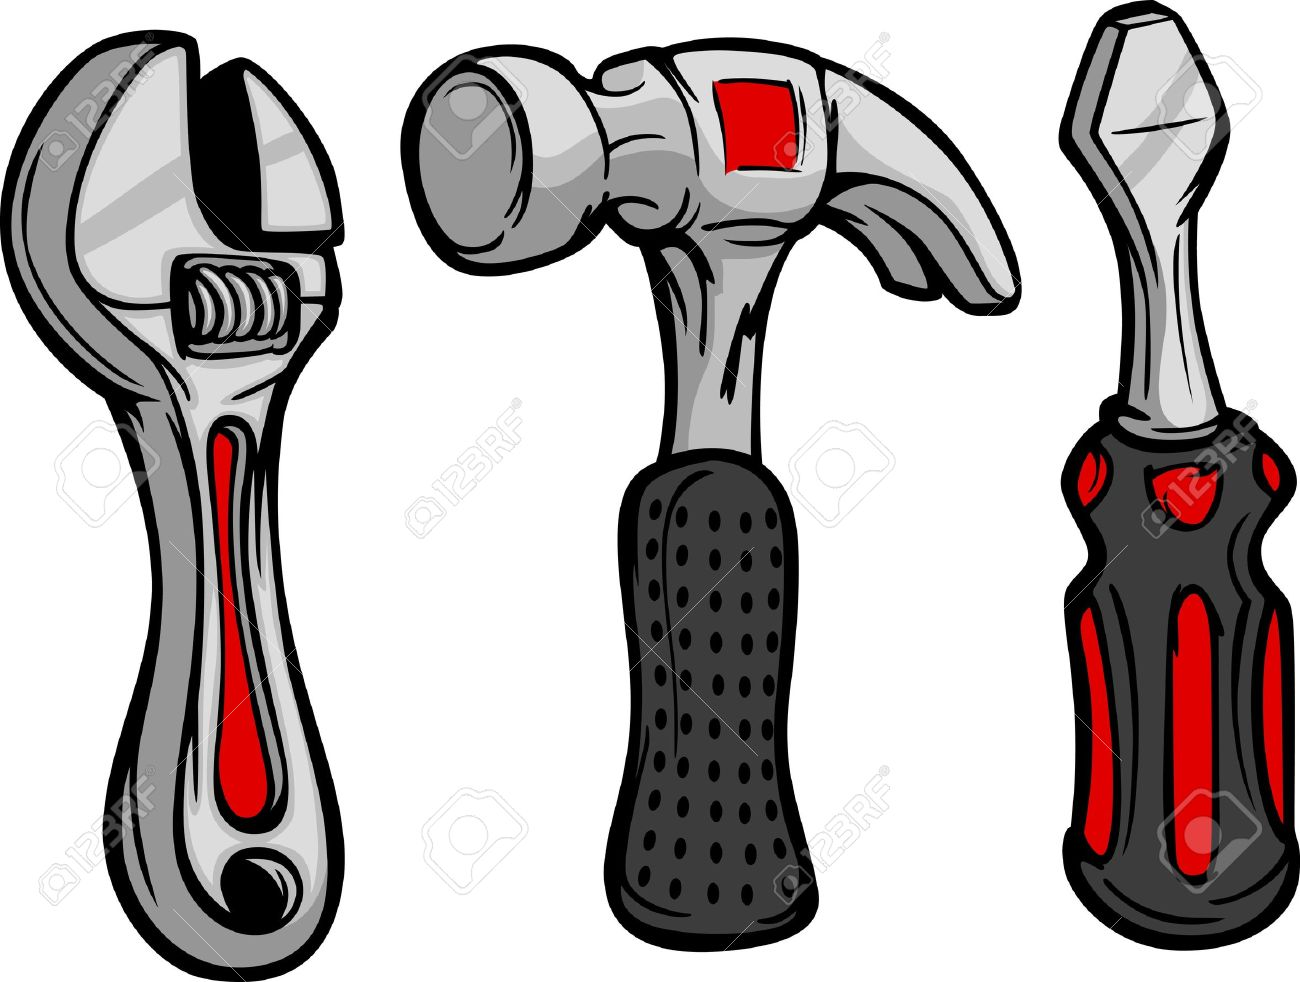 1300x982 Cartoon Image Of Home Repair Tools Hammer, Wrench And Screwdriver